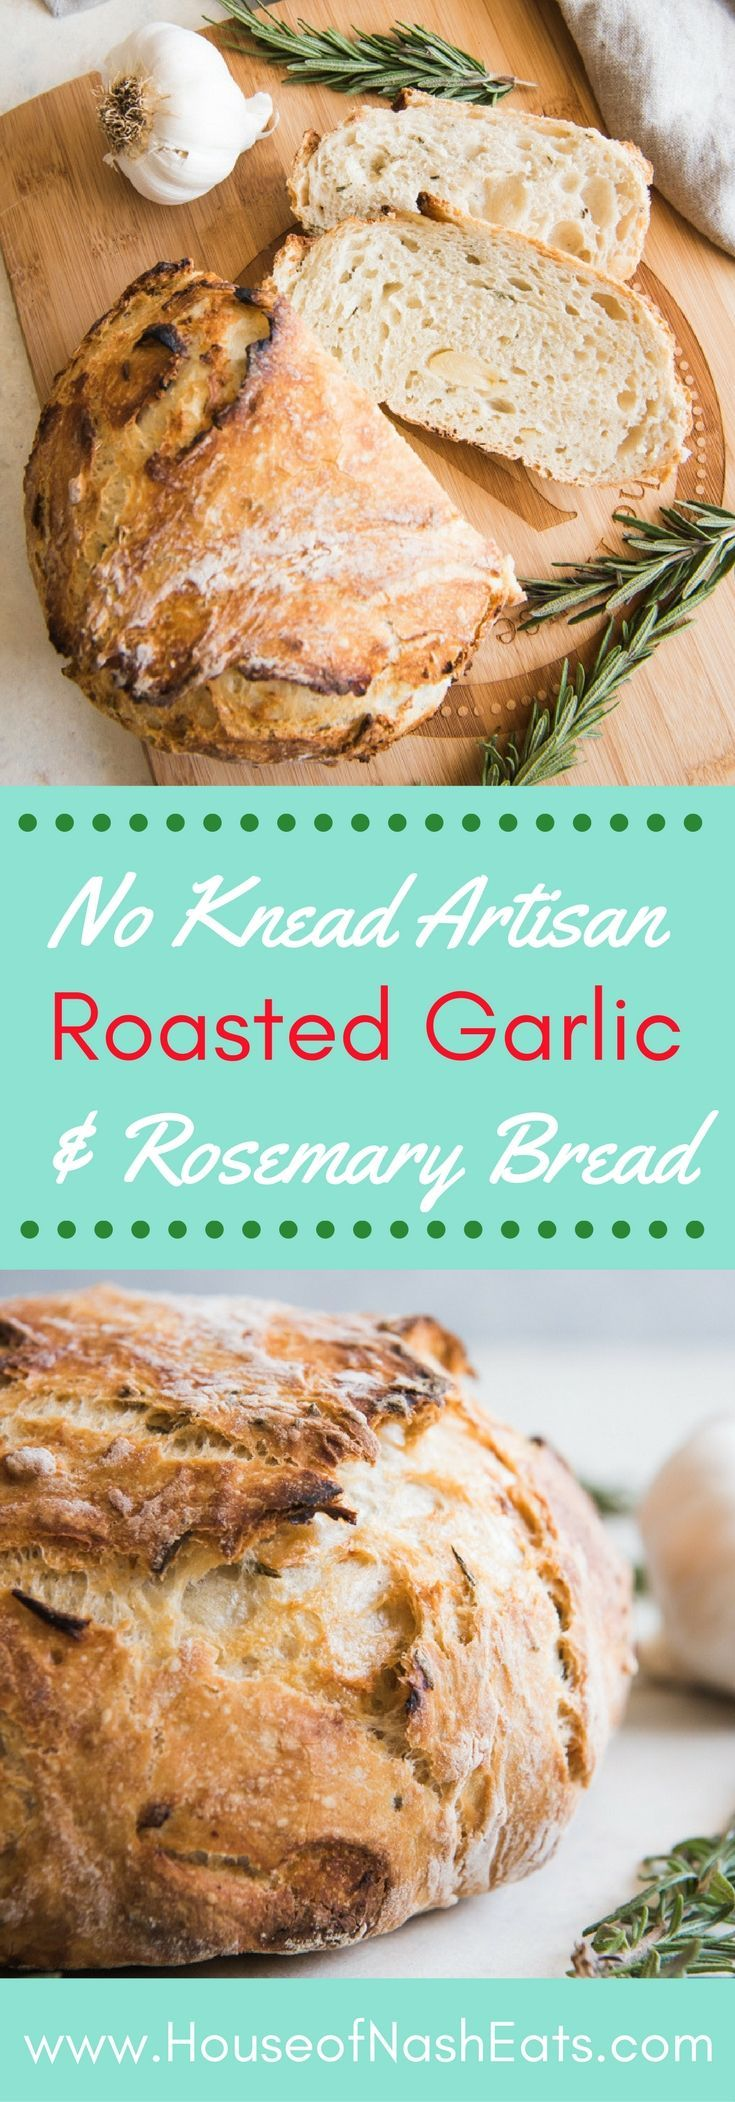 Roasted Garlic & Rosemary No Knead Artisan Bread has gorgeous, golden brown crusty exterior and a soft, airy texture inside and is loaded with flavor from buttery, roasted garlic and fresh rosemary! It's such an easy rustic bread recipe that you will wond